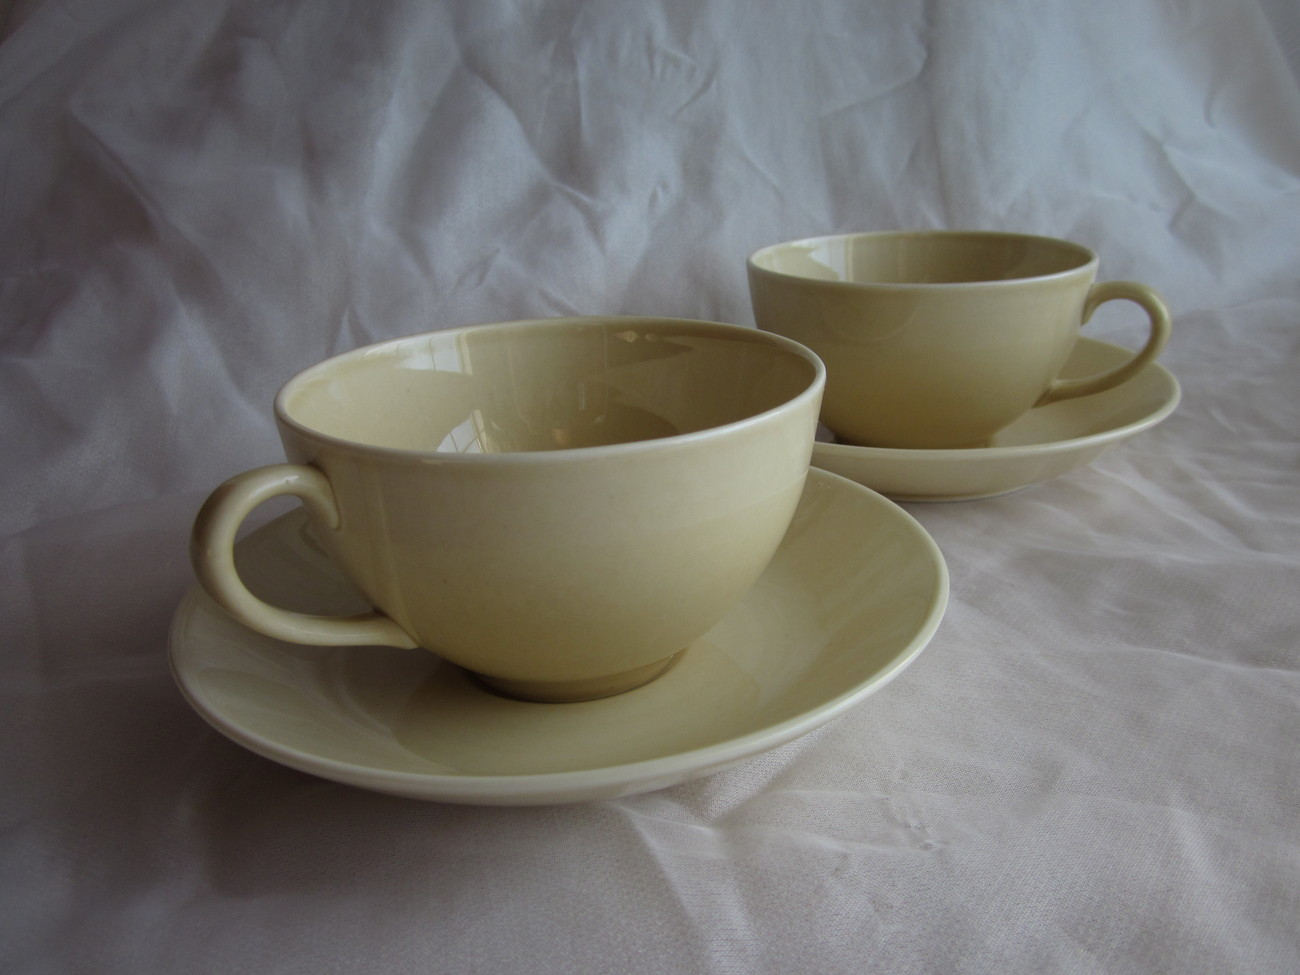 Lot of 2 Cups and 2 Saucers Gustafsberg 1996 Sweden Bone China